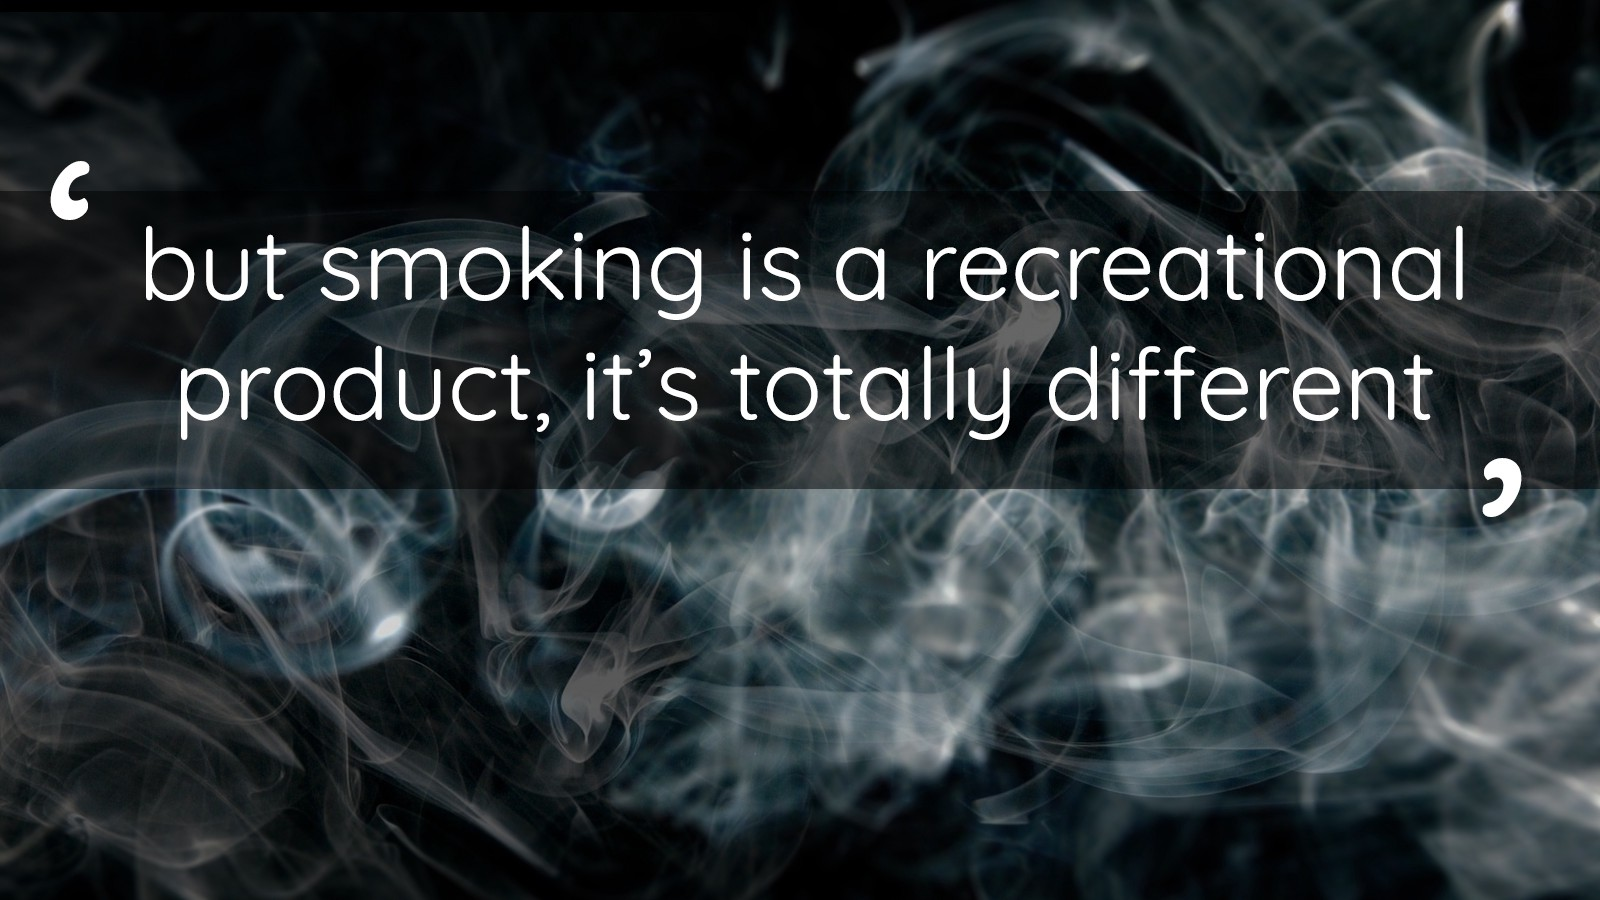 'but smoking is a recreational product, it's totally different'